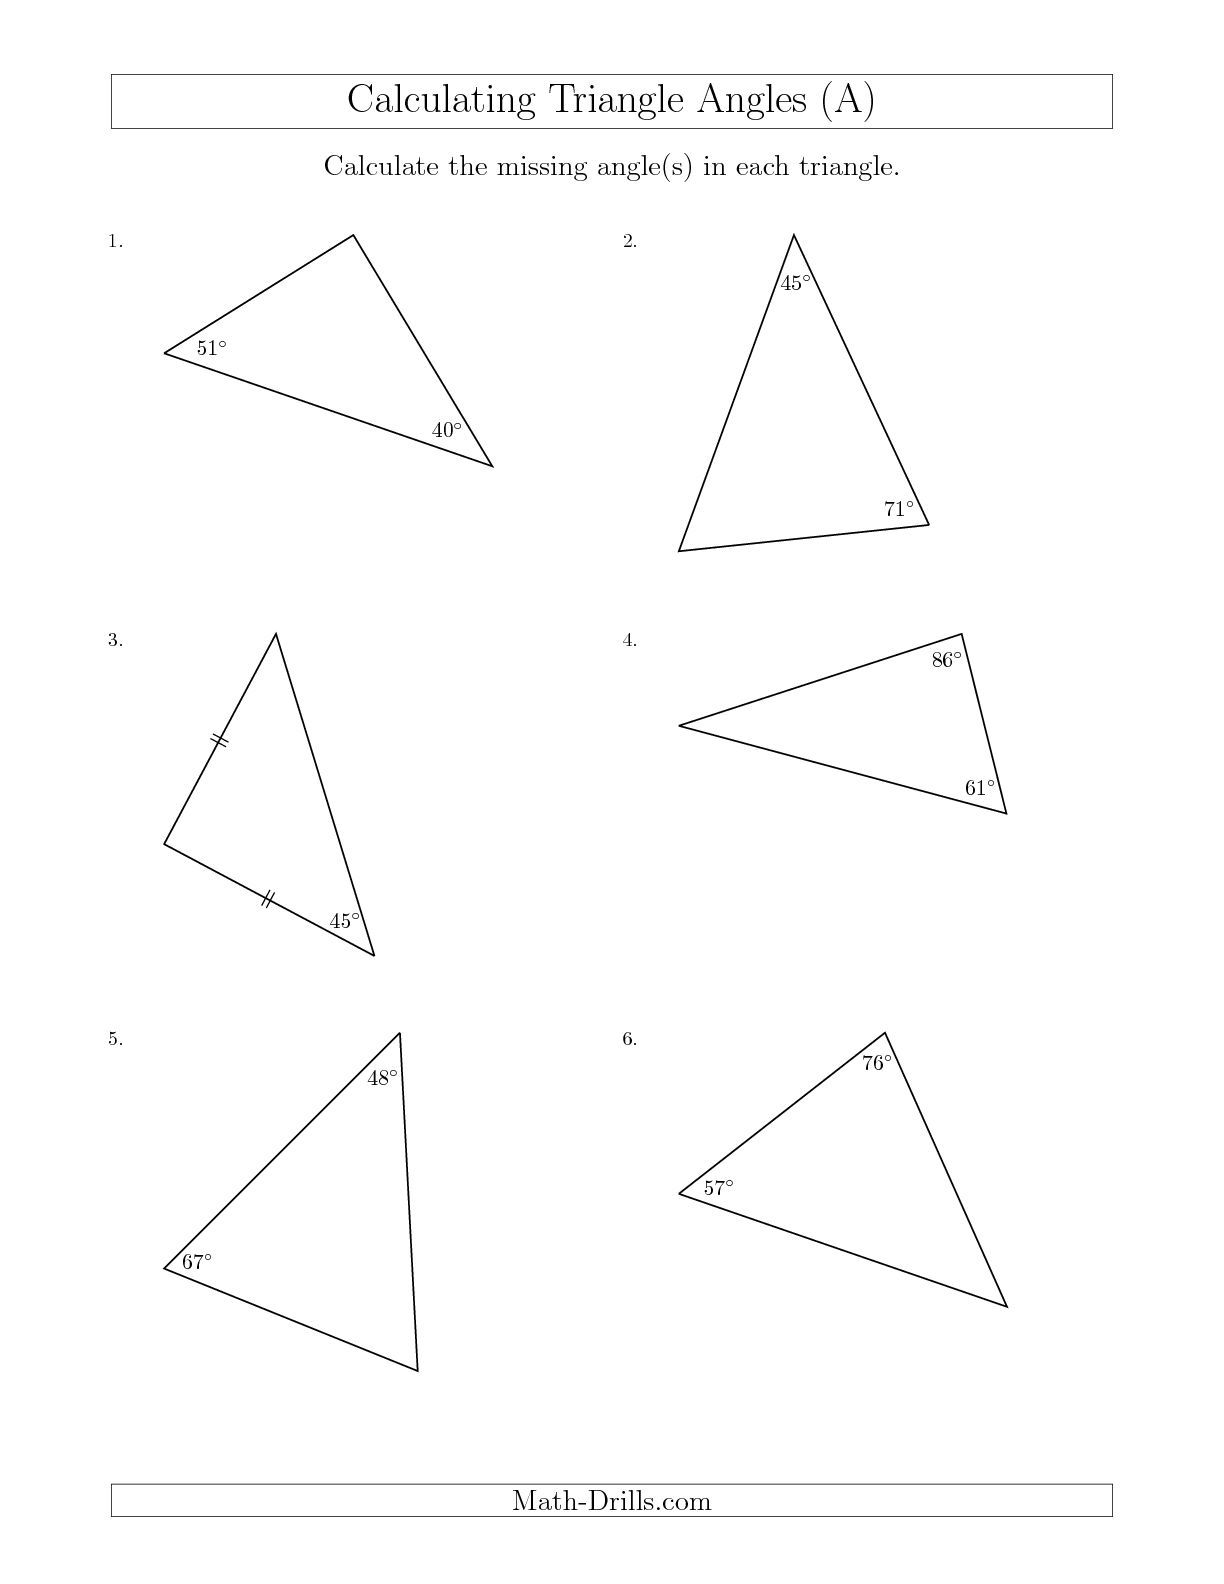 New Calculating Angles Of A Triangle Given The Other